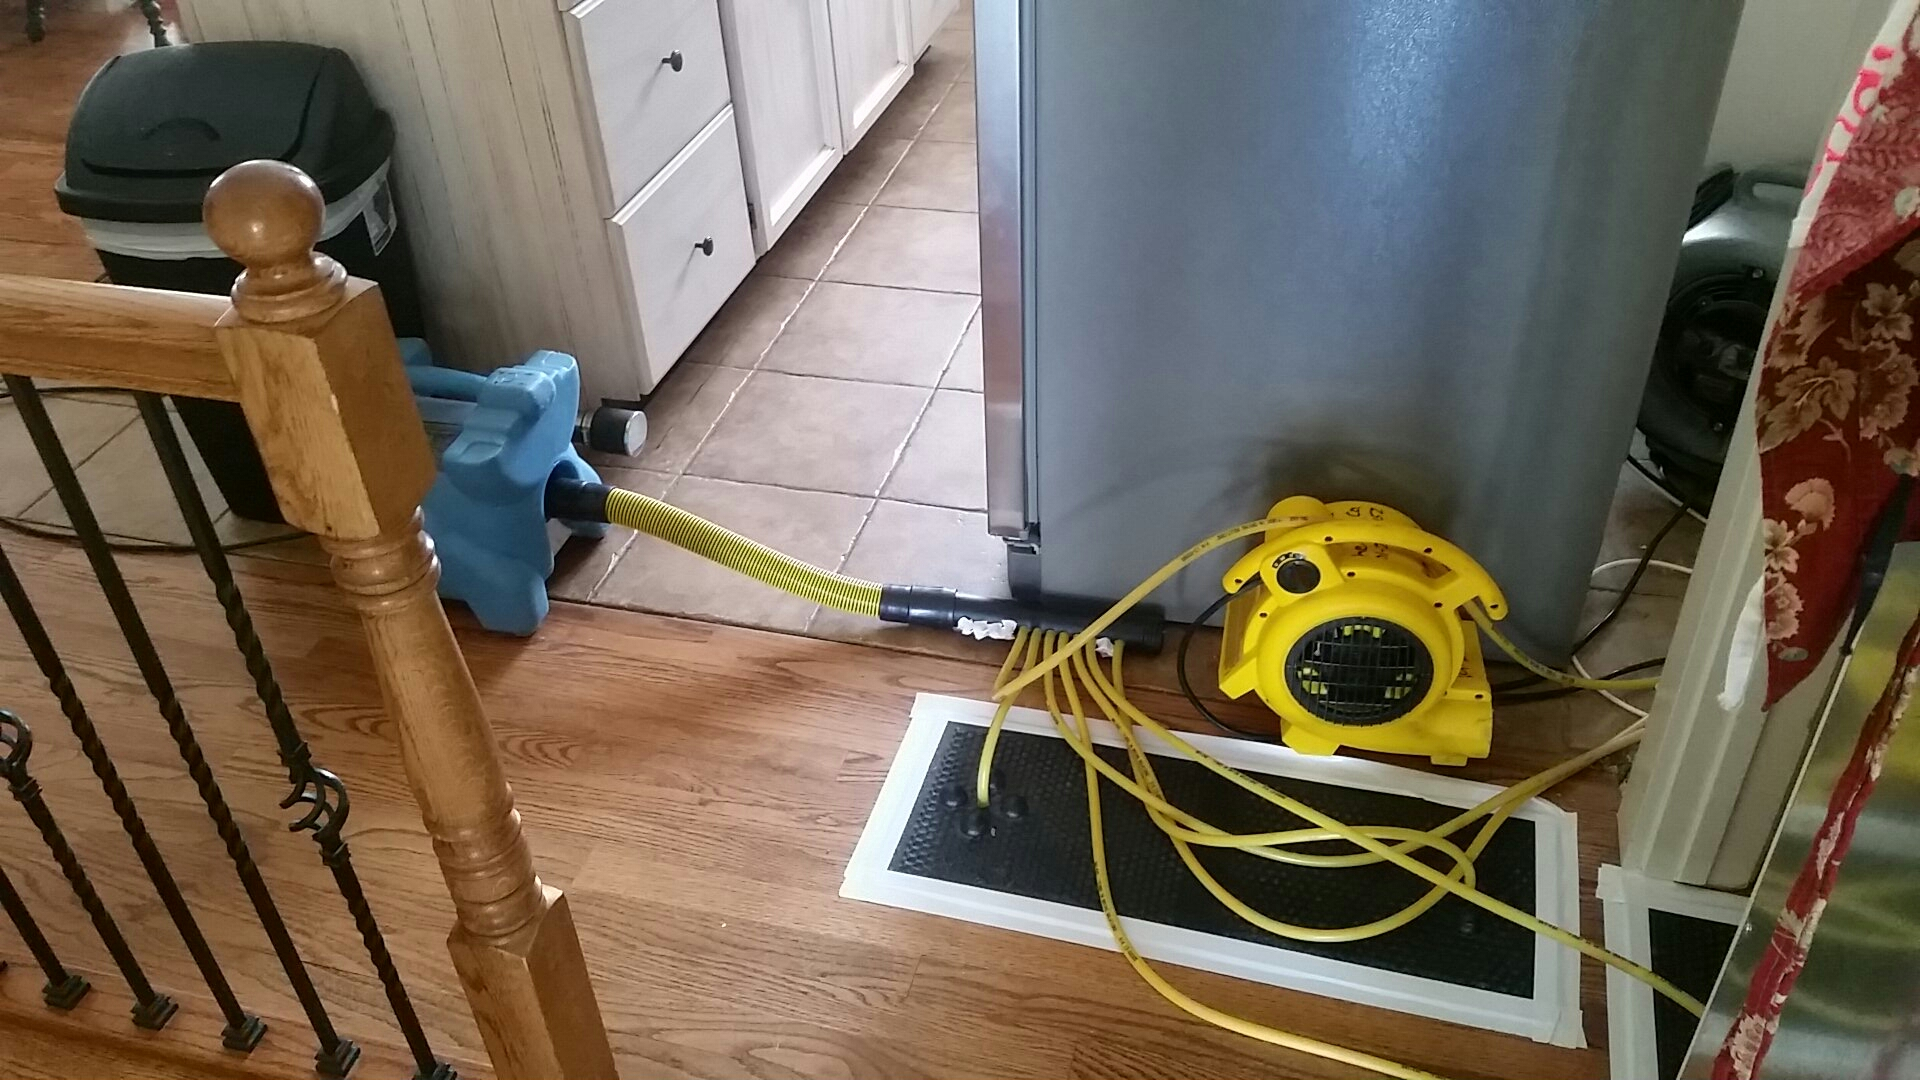 South Jordan, UT - Just set up a hardwood floor drying system on a job in South Jordan. They had a flood from their refrigerator, thankfully their floor can be saved!